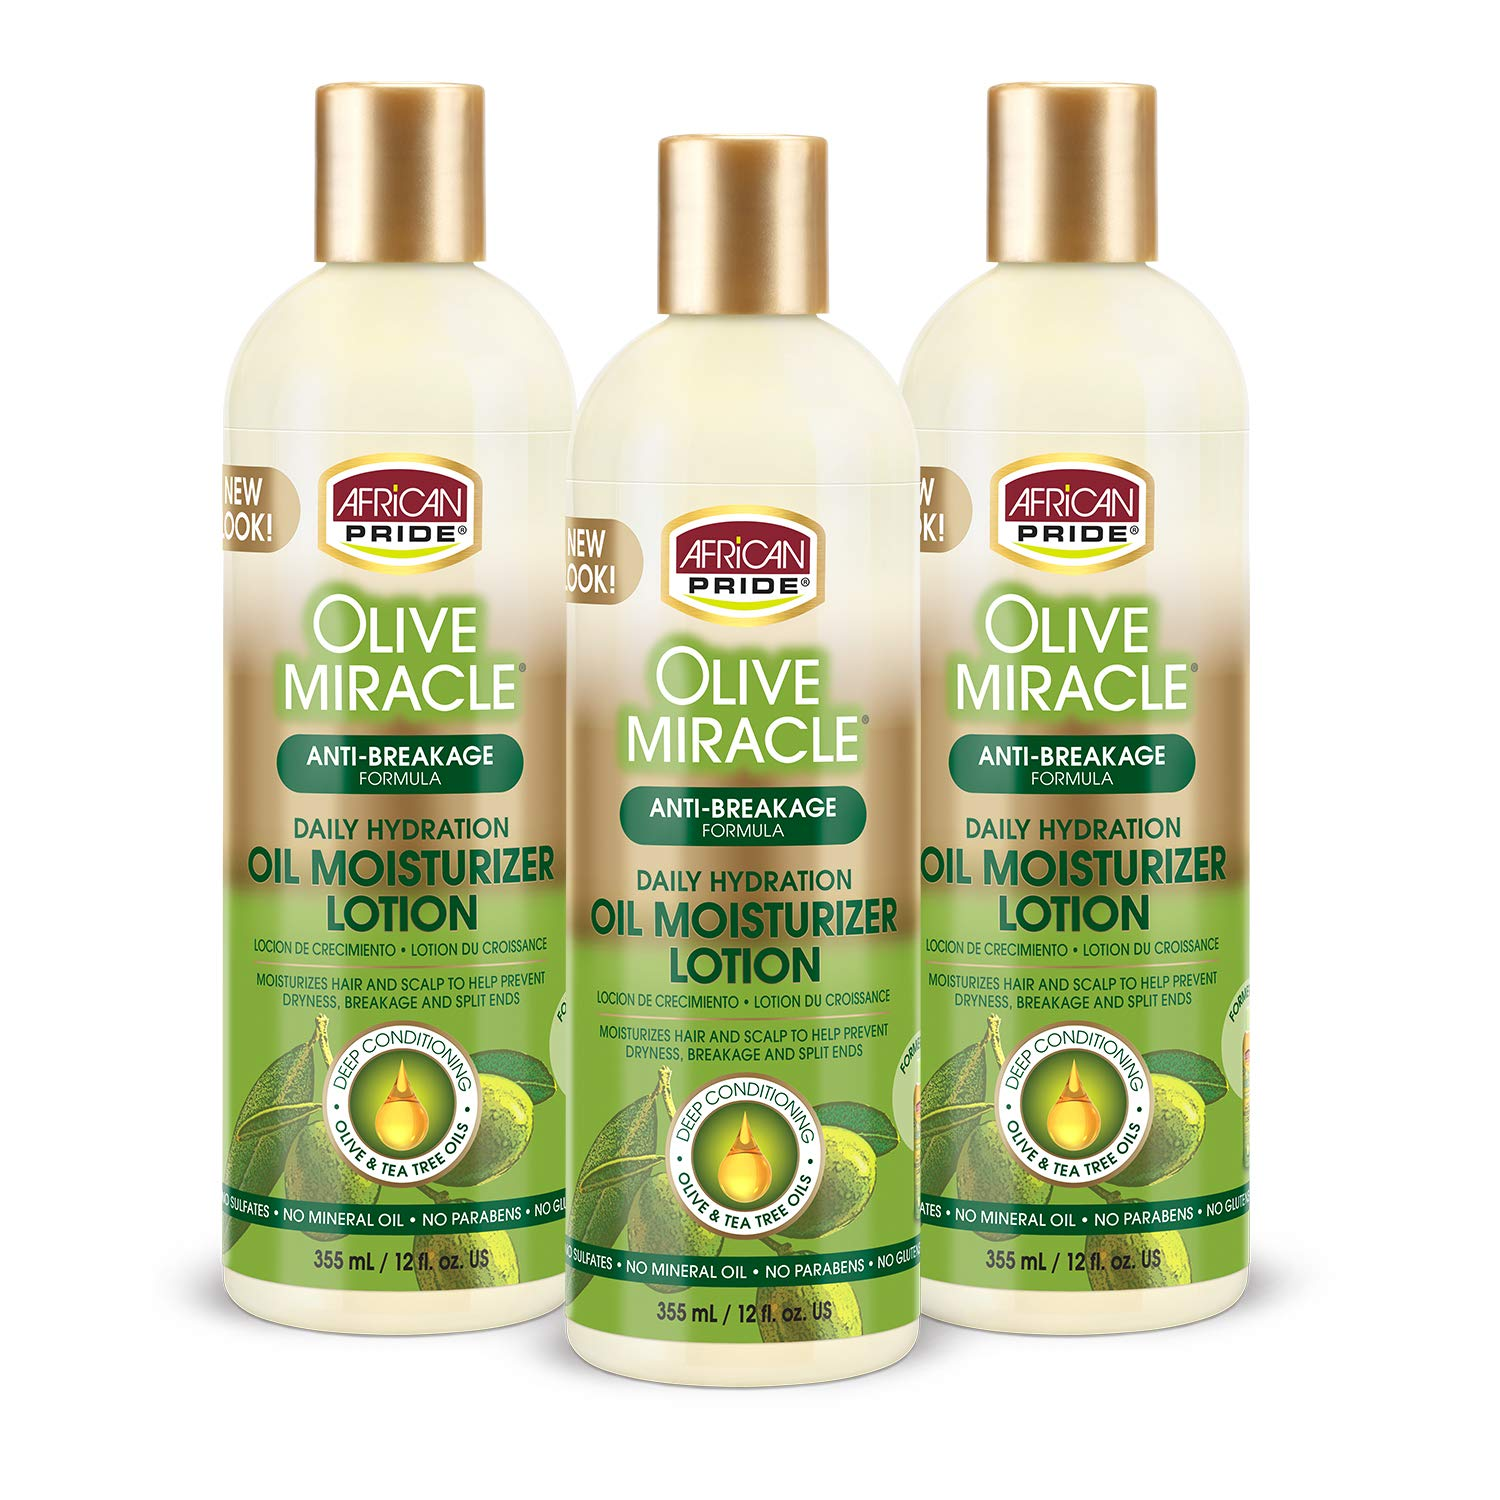 African Pride Olive Miracle Hair Moisturizing Lotion (3 Pack) enriched with olive and tea tree oil to prevent damage and seal in moisture,12oz